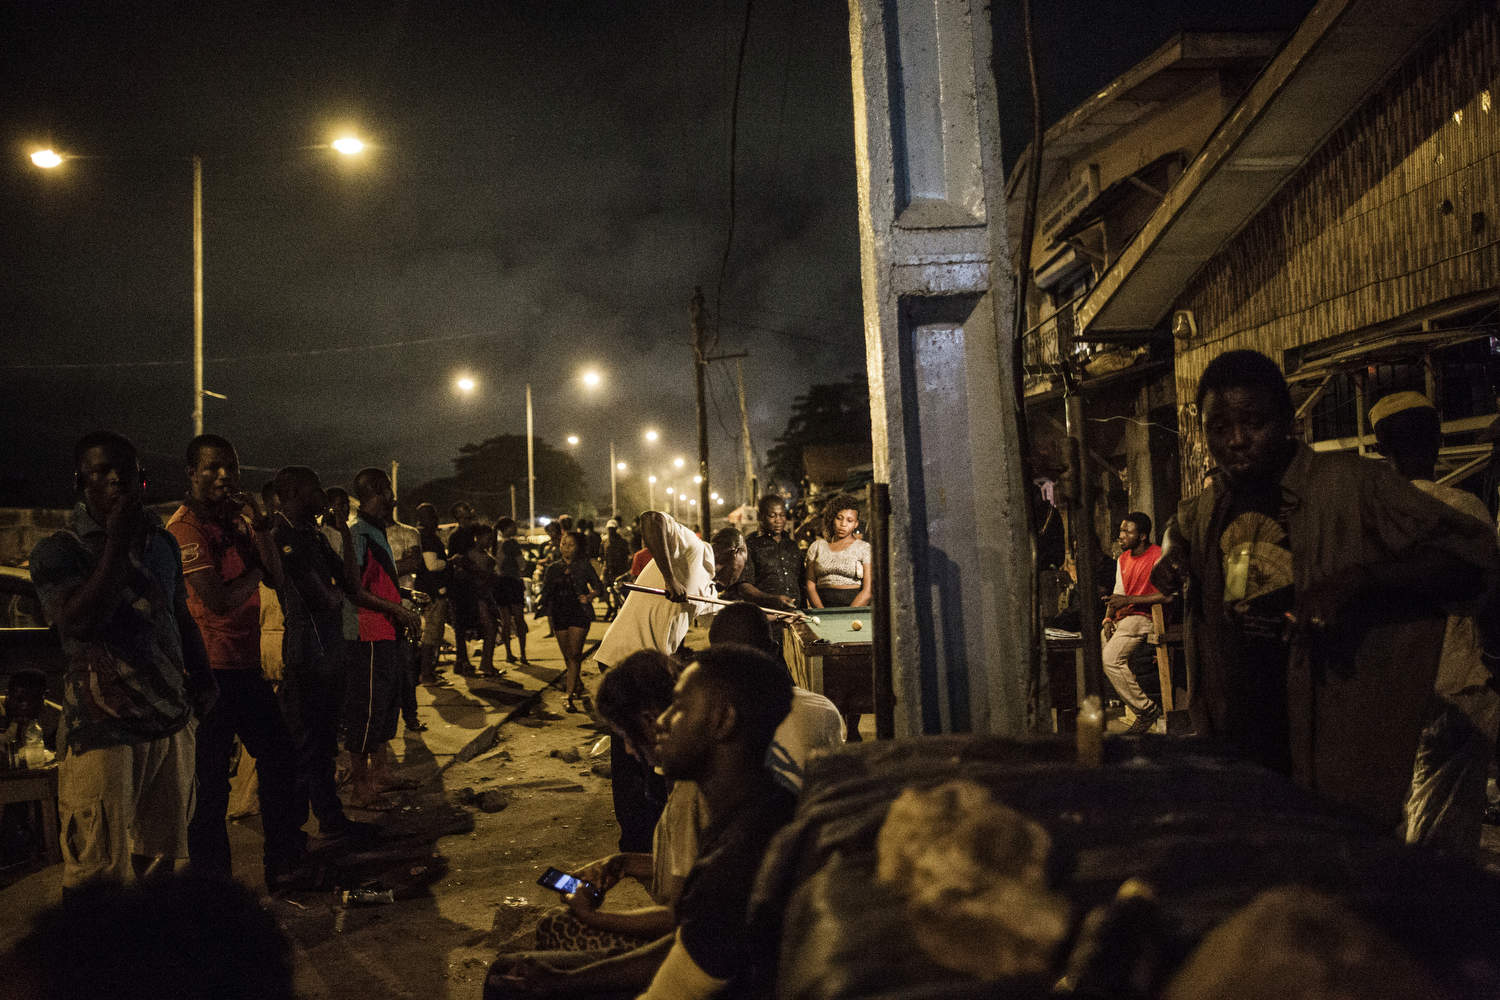 The streets of Obalende, a rough neighborhood in Lagos, are packed at night with young people looking for a good time and girls looking to make some money.